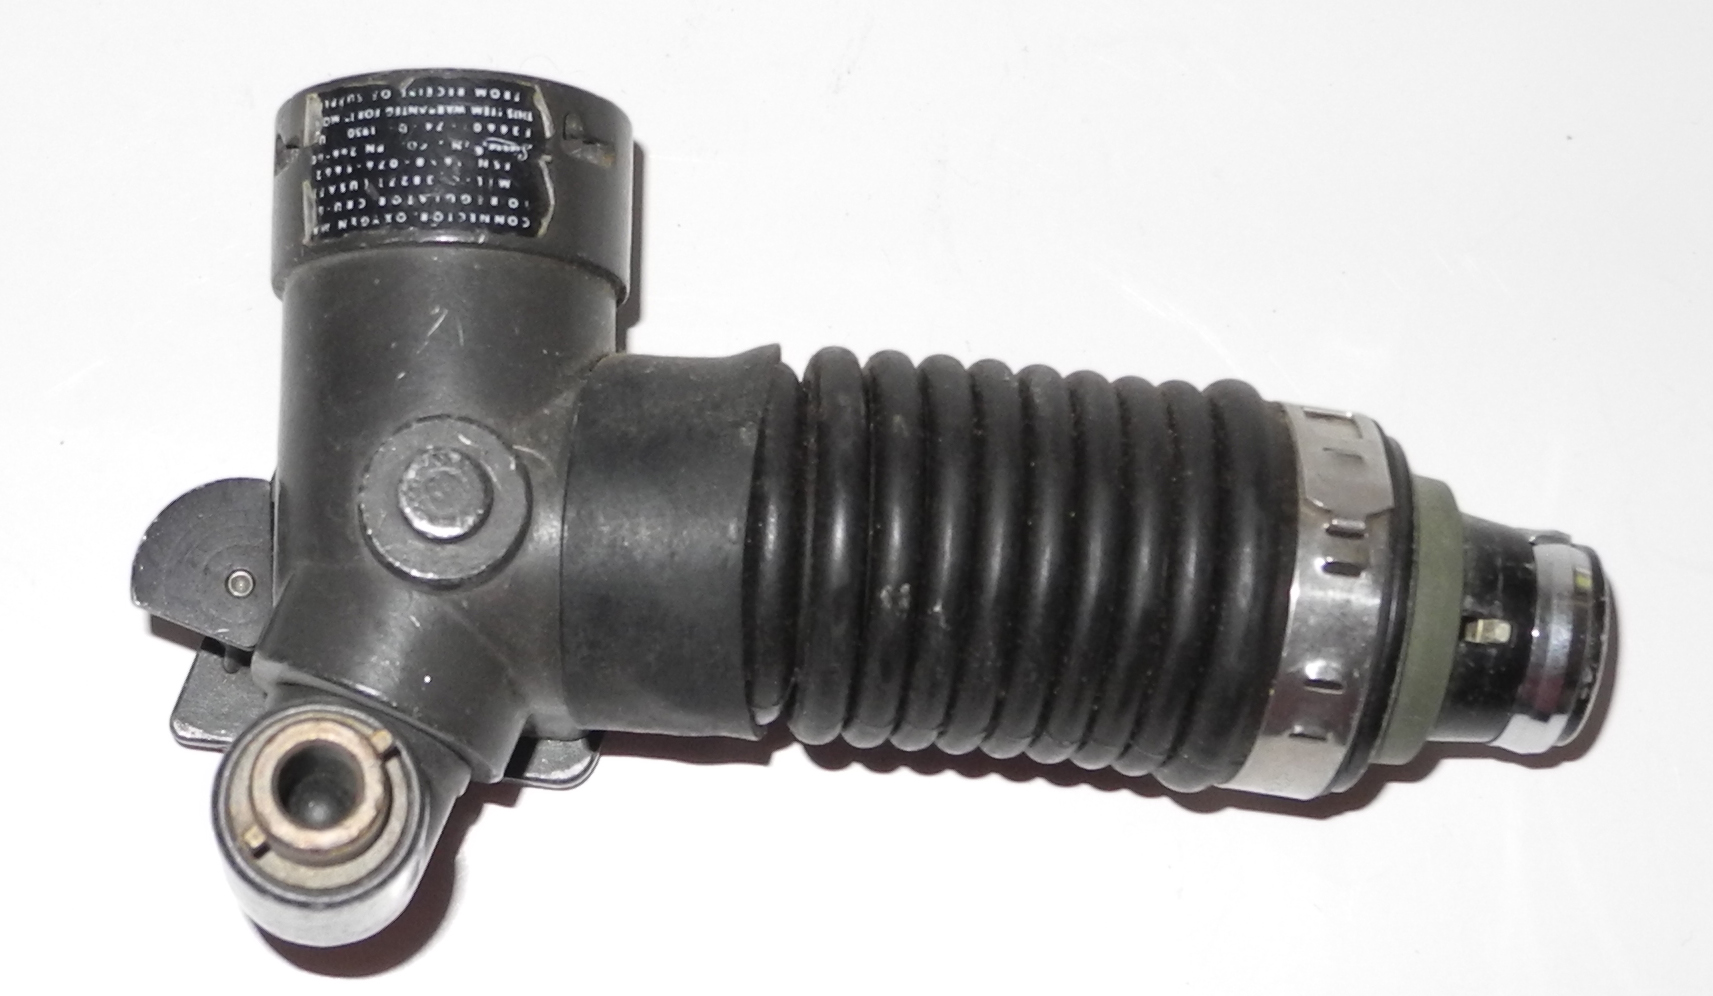 USAF CRU-60 mask / hose connector